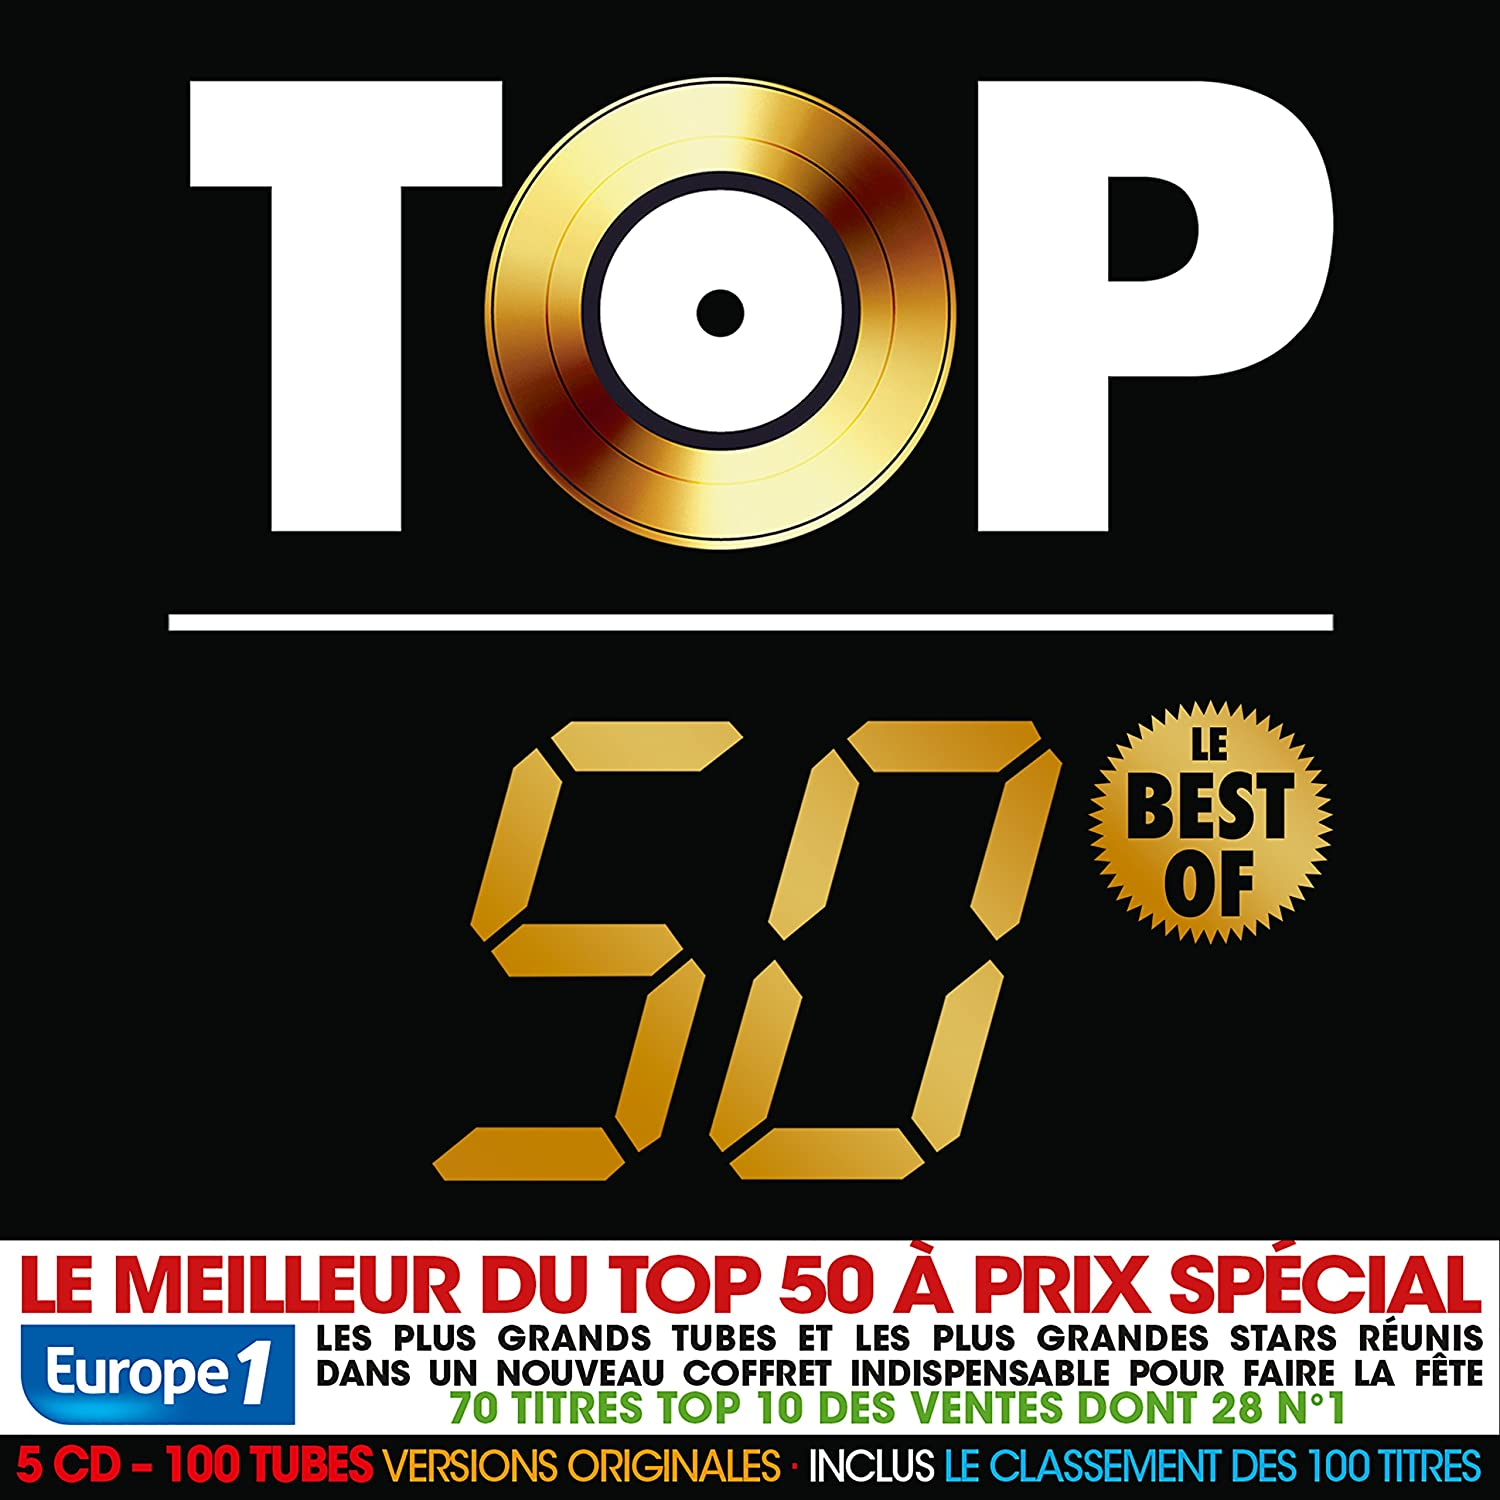 Top 50 : Le best of